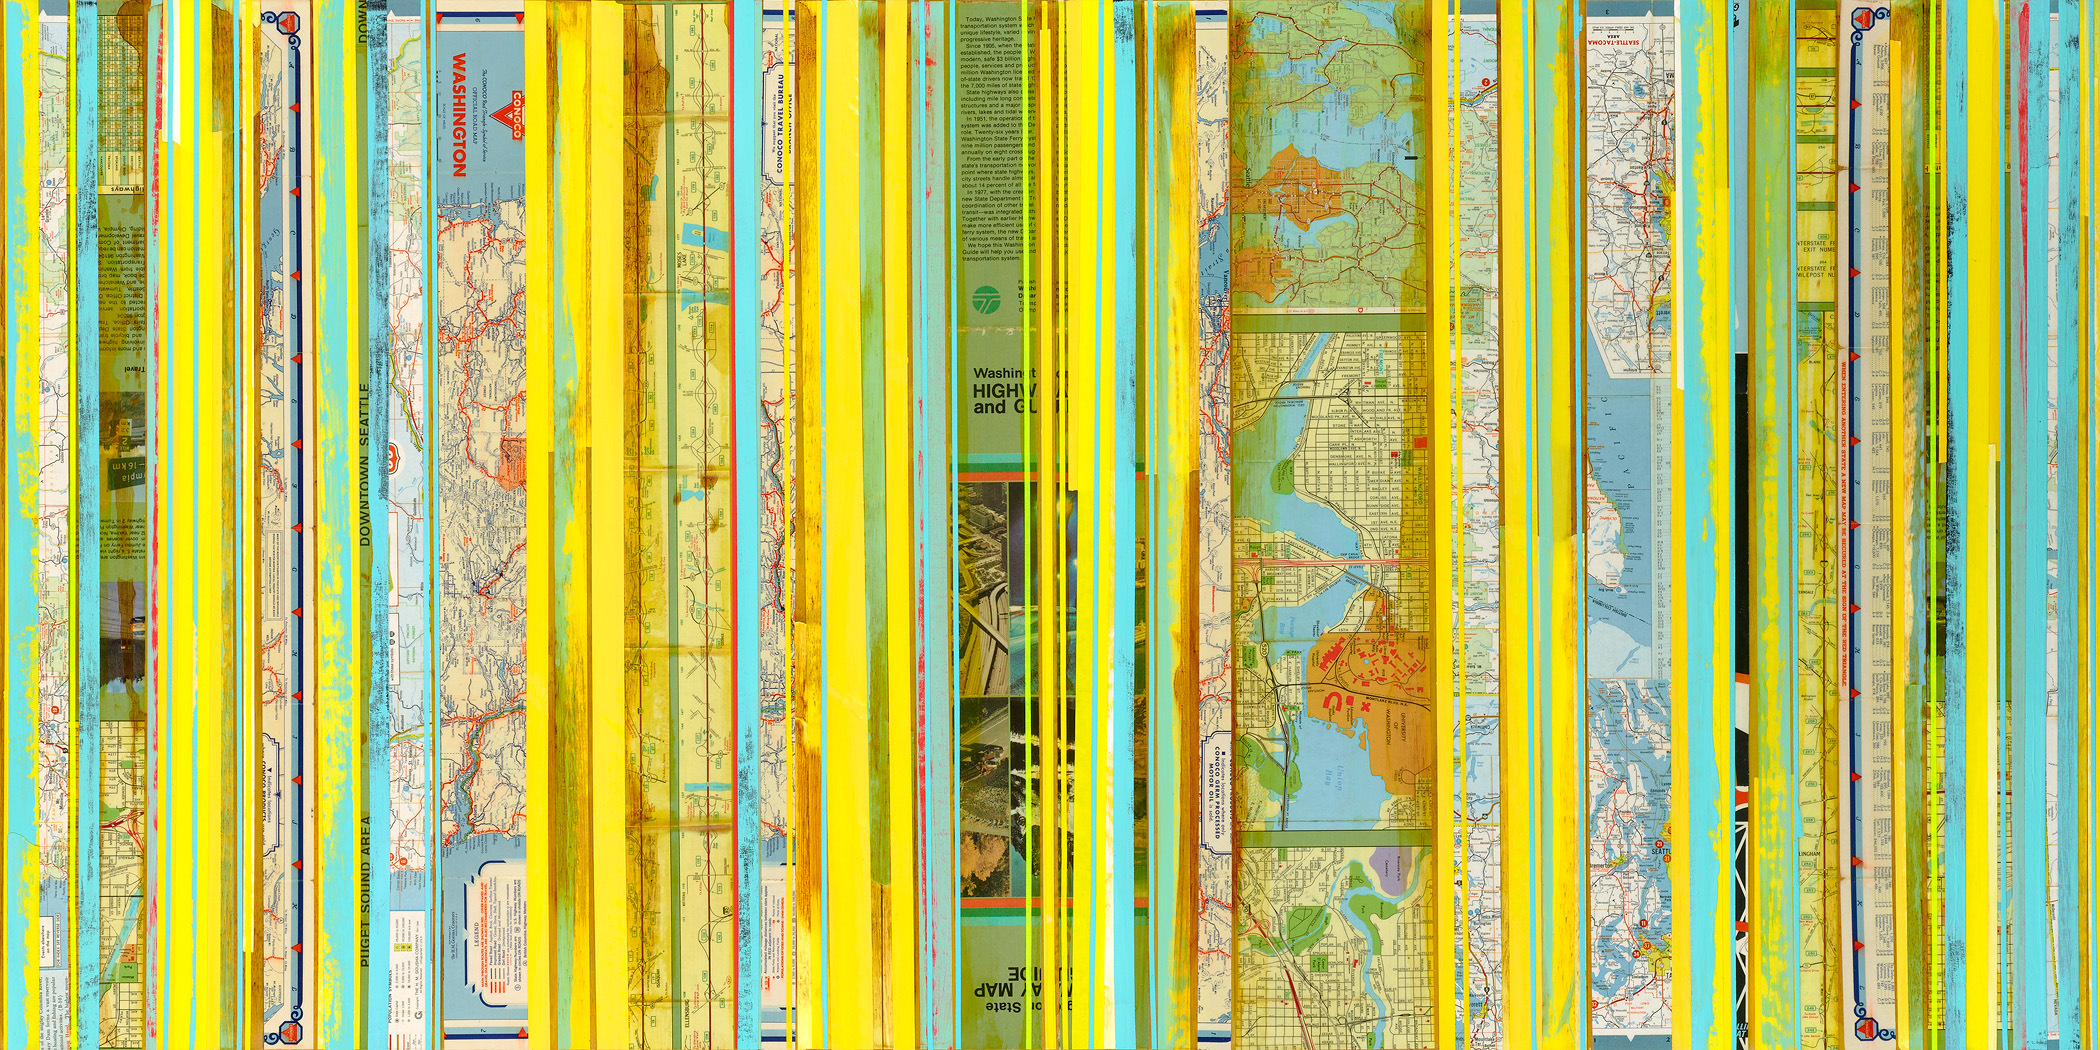 """Map Painting 1404 / Washington, Seattle / Mapping Series / 2014 / 24""""h x 48""""w x 2""""d / Vintage maps, paper collage and ink on panel / Unframed with bare wood edge"""